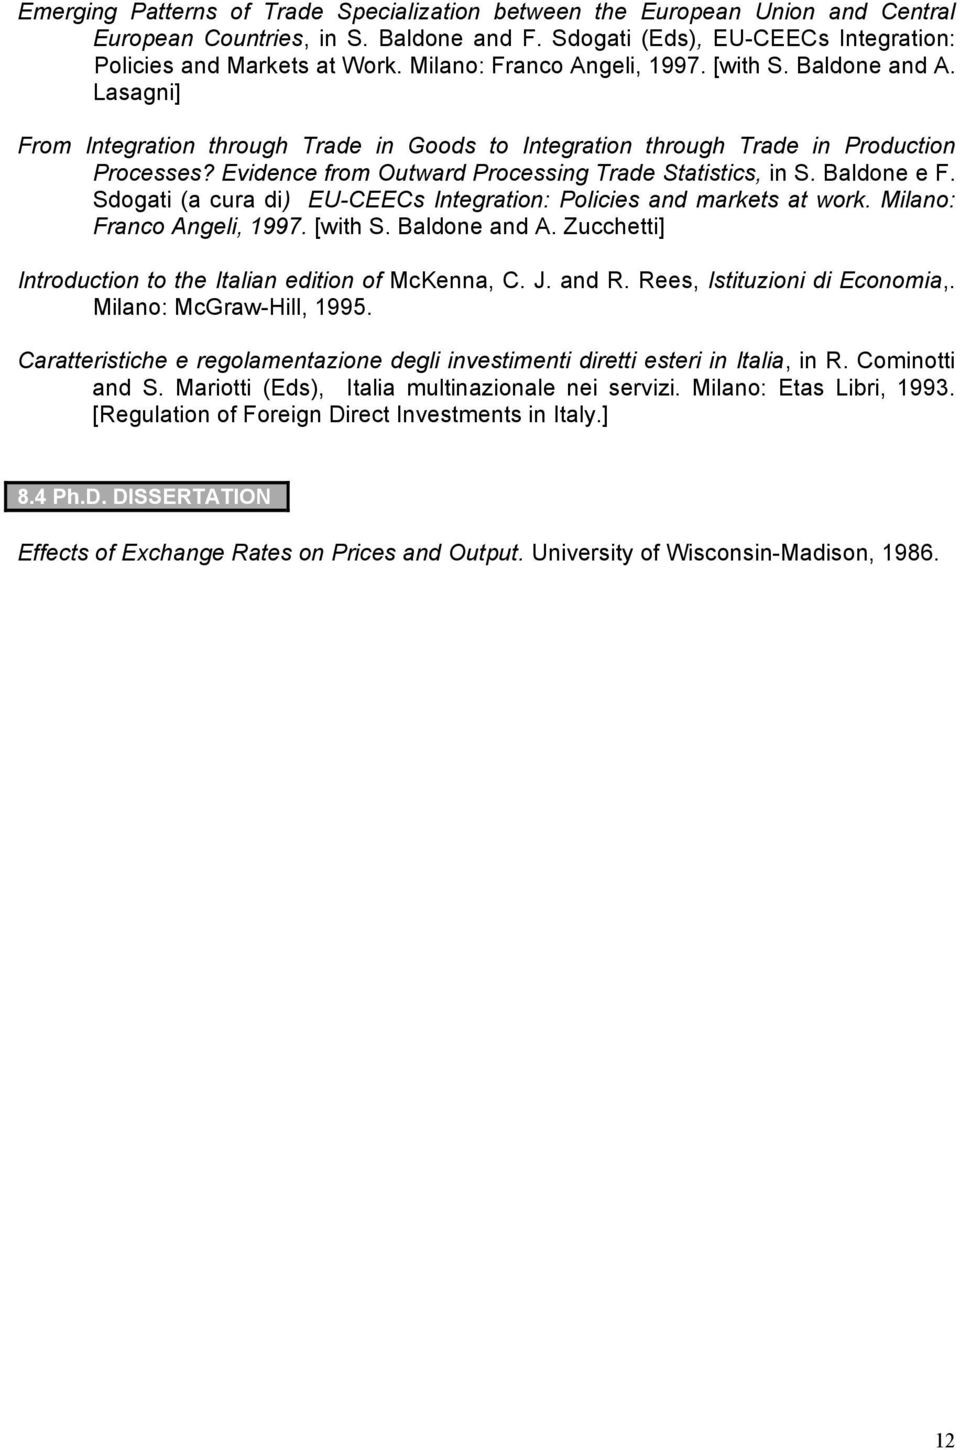 Evidence from Outward Processing Trade Statistics, in S. Baldone e F. Sdogati (a cura di) EU-CEECs Integration: Policies and markets at work. Milano: Franco Angeli, 1997. [with S. Baldone and A.